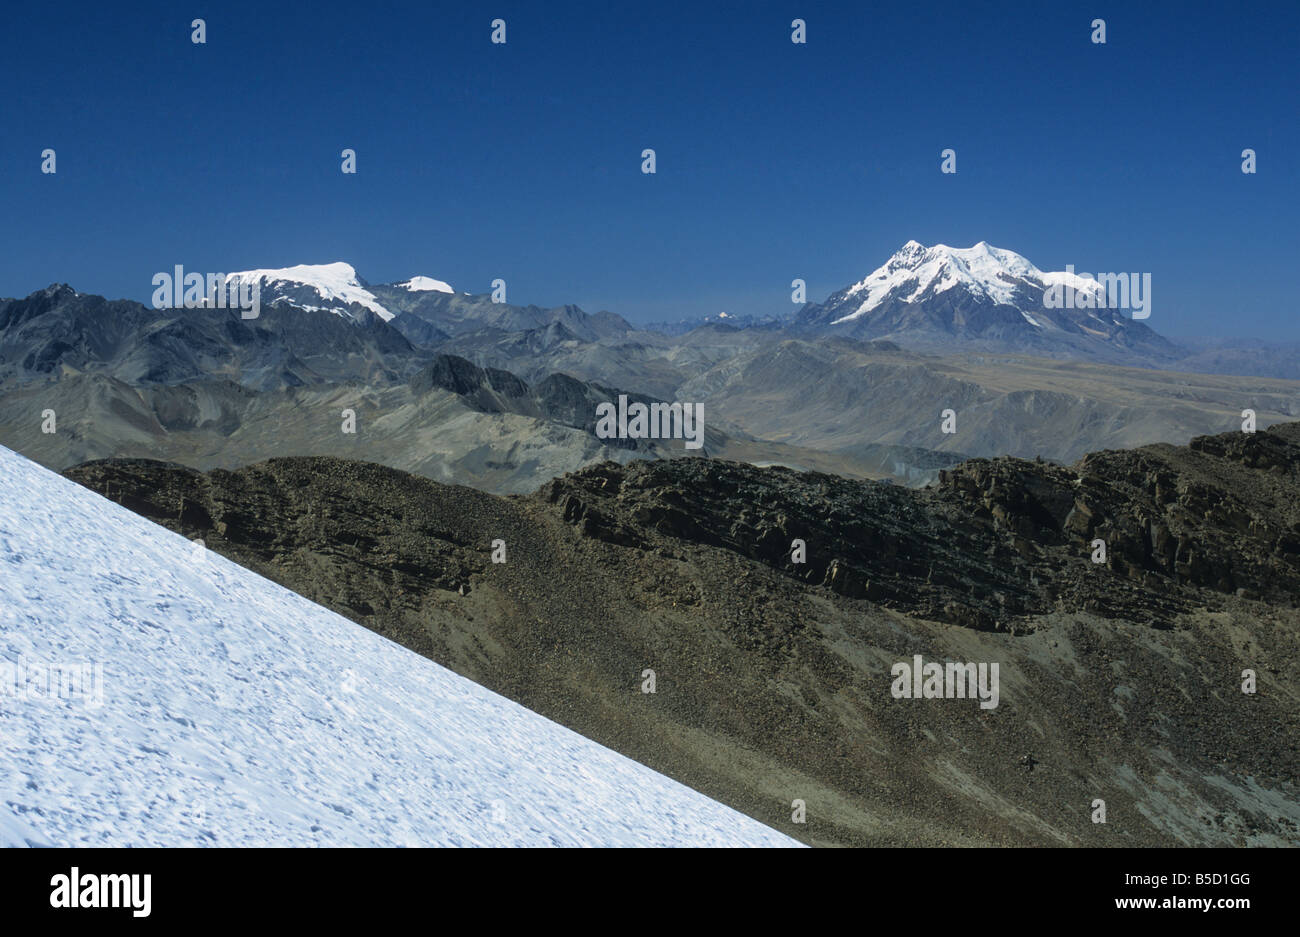 Mts Mururata (L) and Illimani (R) seen from Mt. Chacaltaya glacier in foreground, Cordillera Real, Bolivia - Stock Image